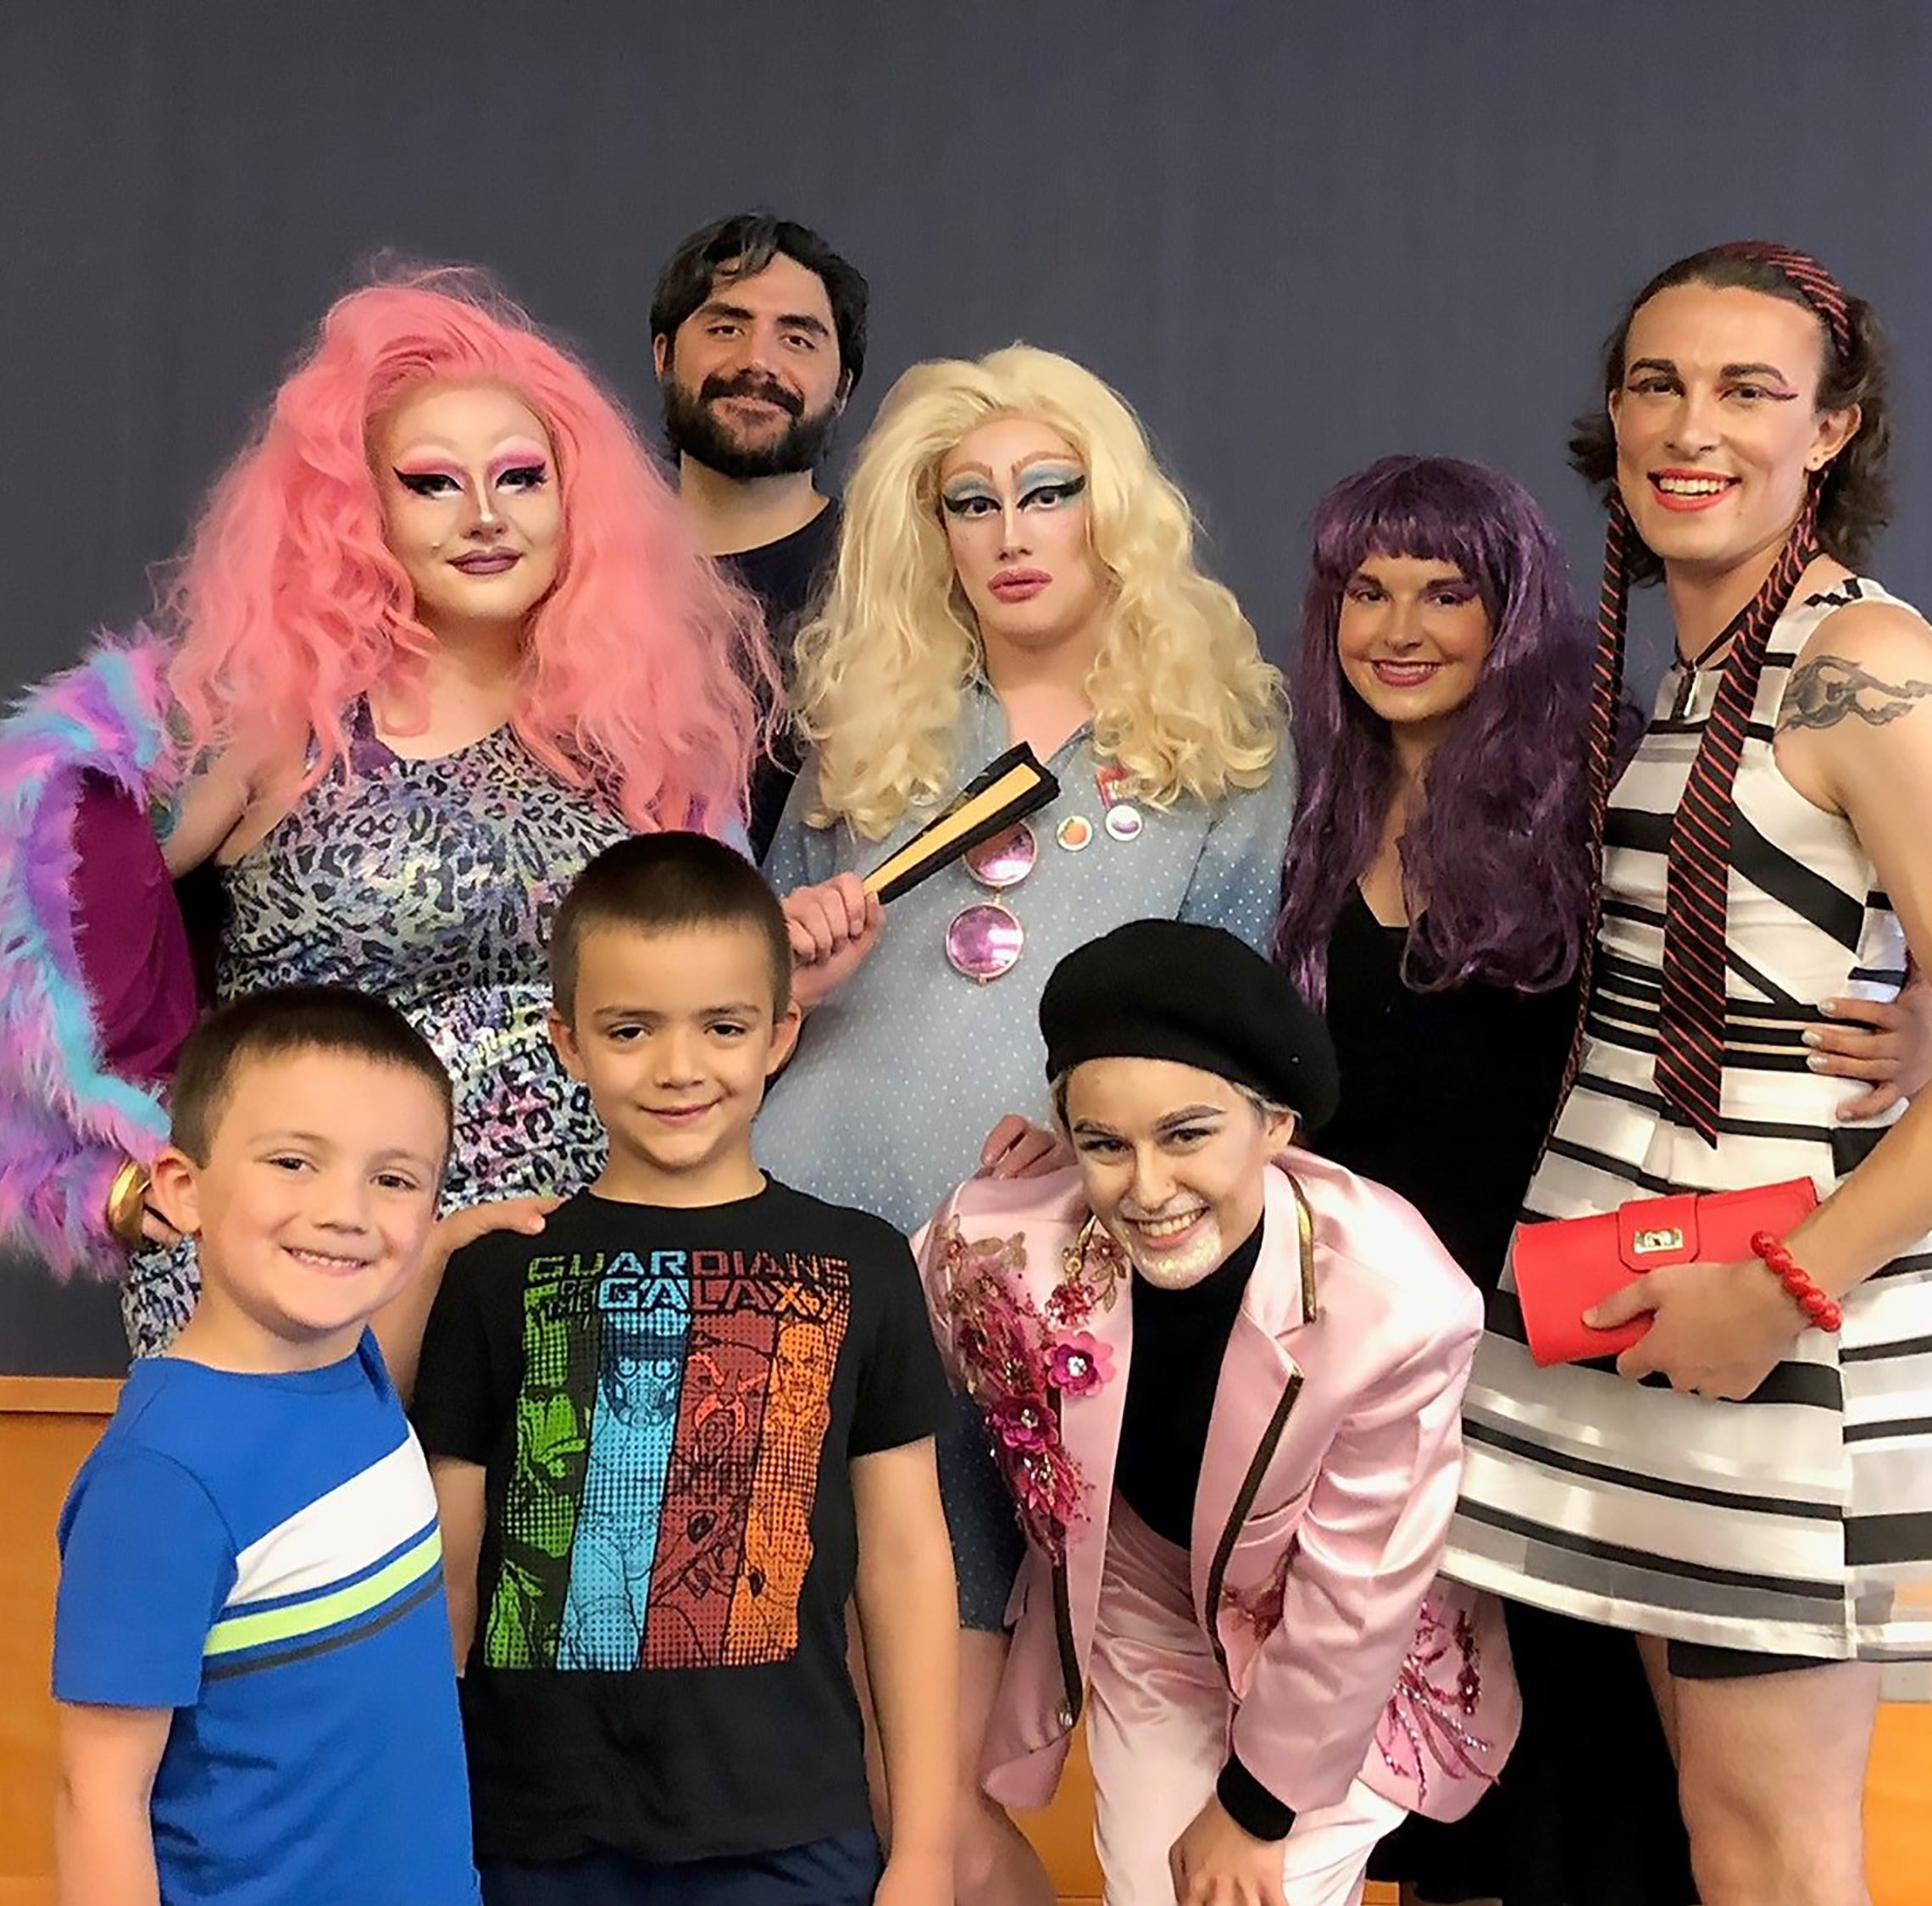 Science supports Evansville's 'Drag Queen Story Hour' | Webb